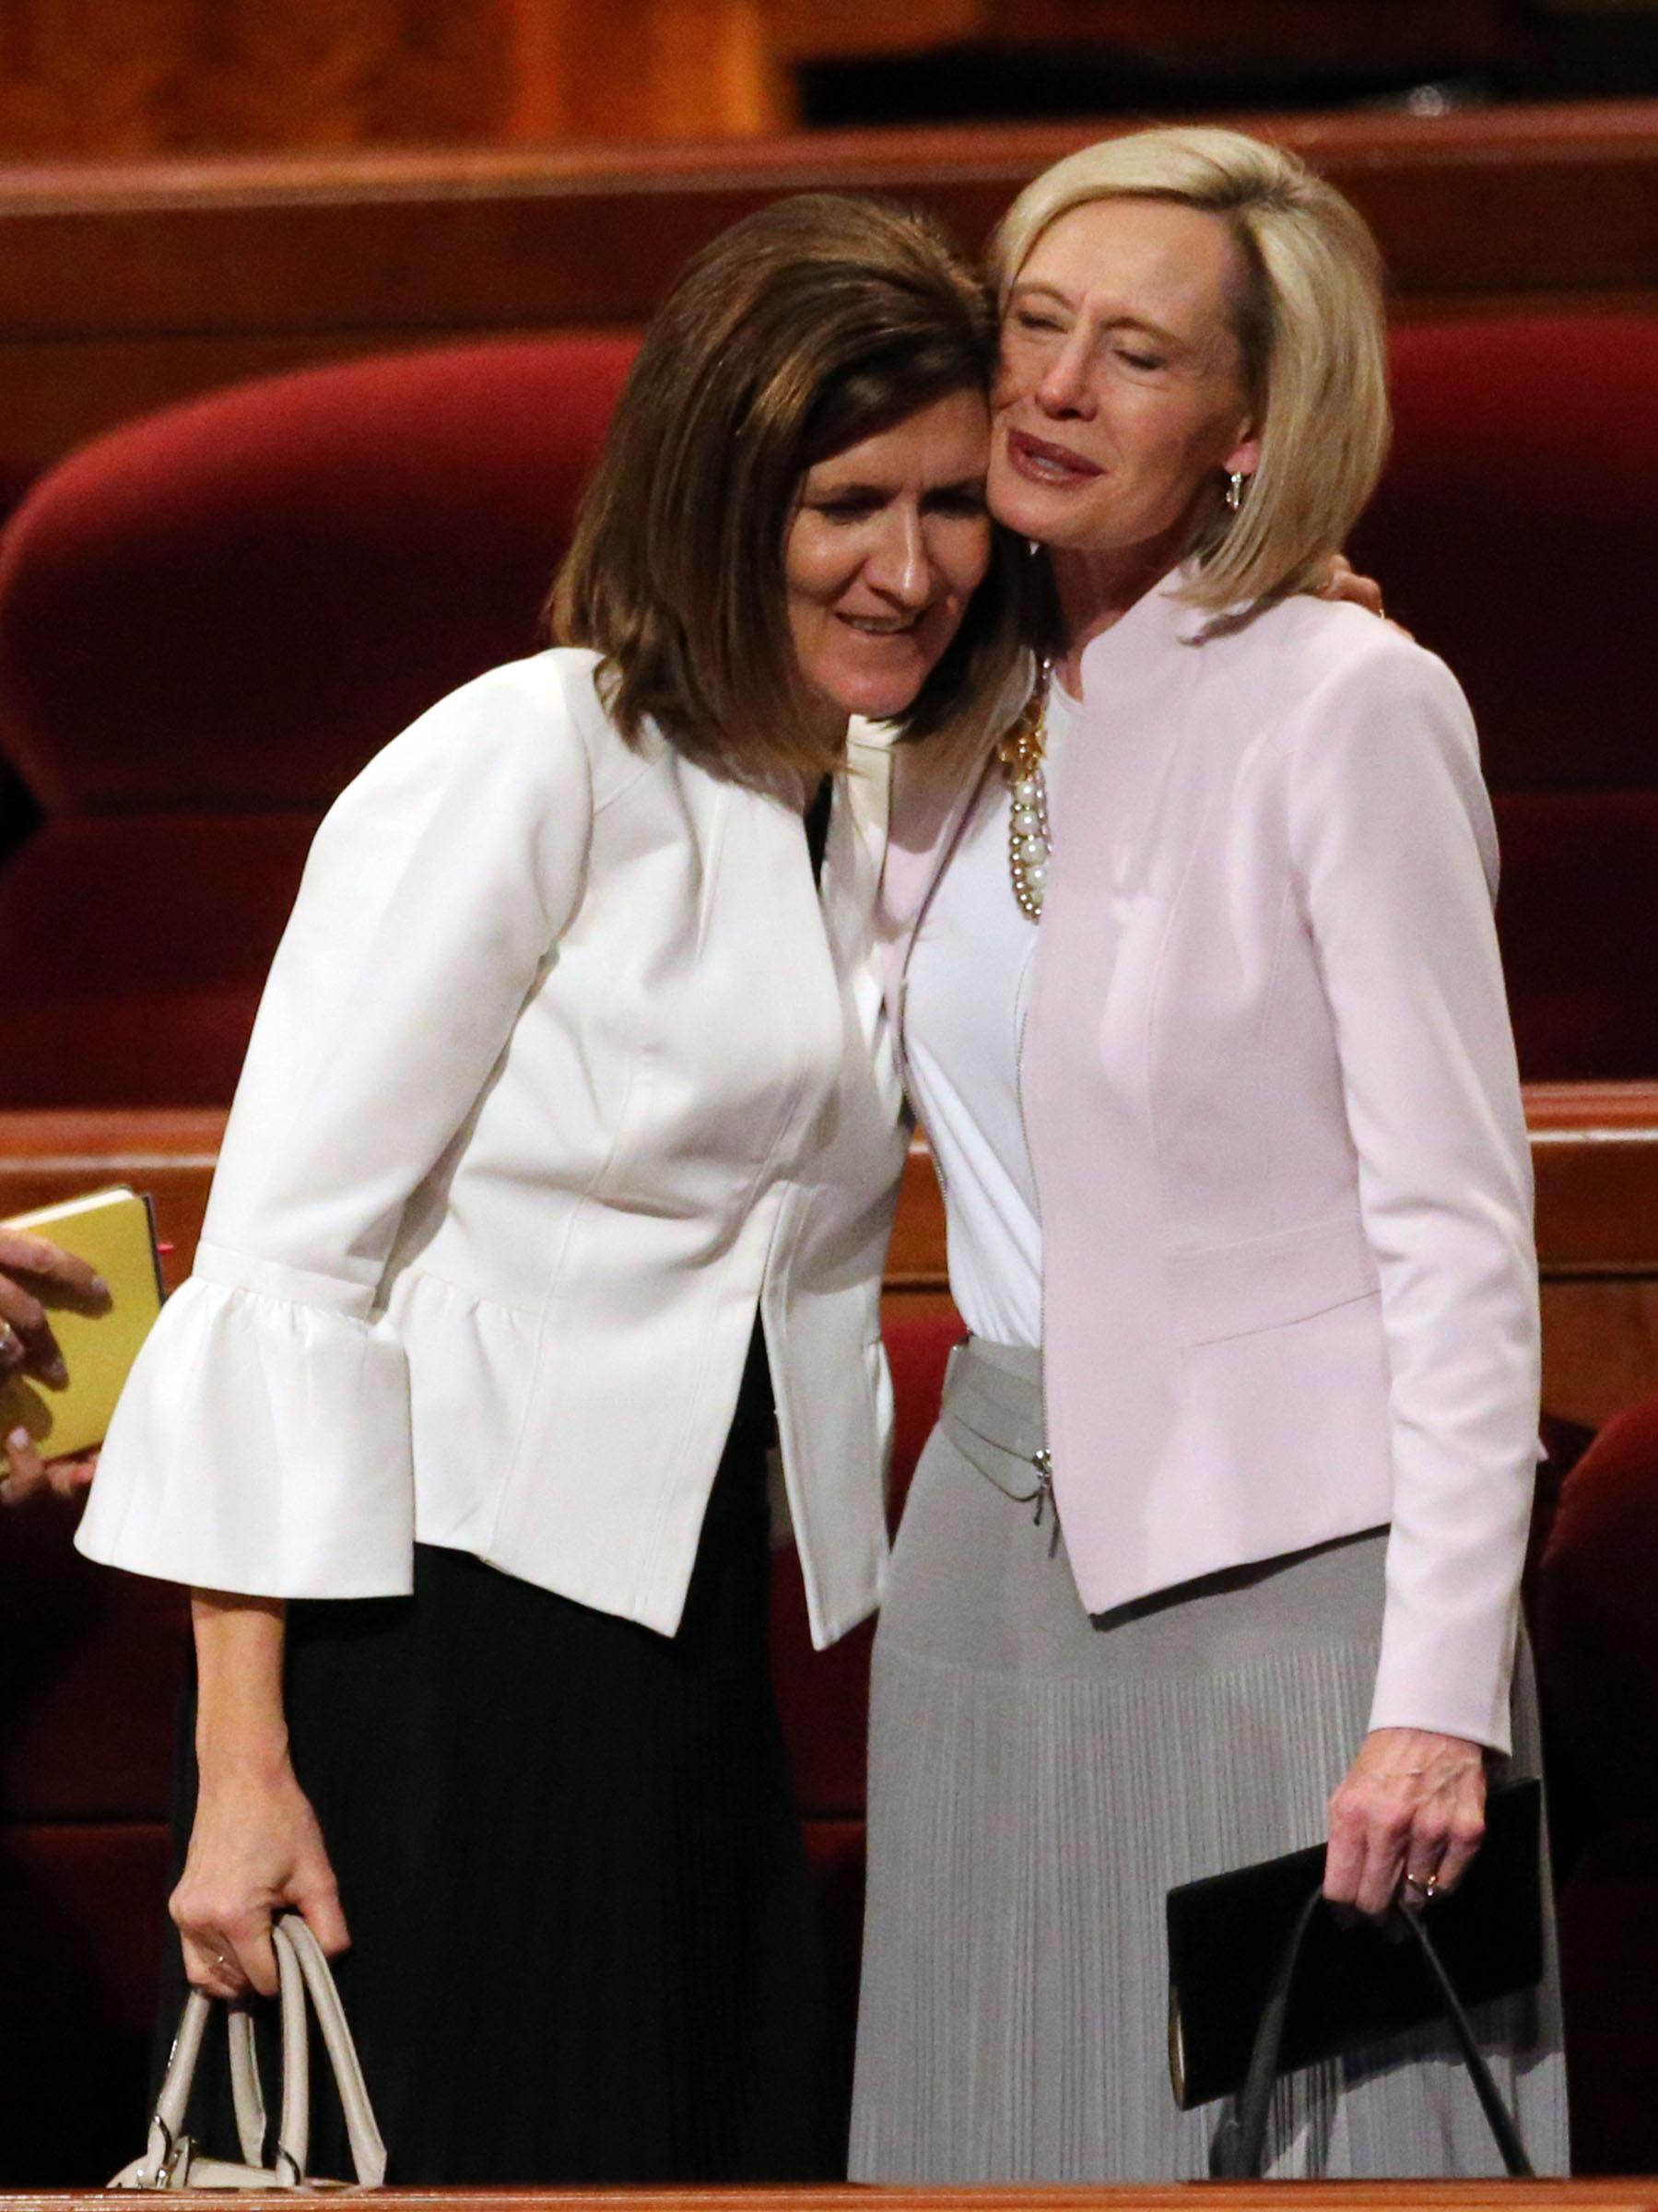 Sister Michelle D. Craig, first counselor in the Young Women general presidency, hugs Sister Bonnie H. Cordon, Young Women general president, after the Sunday afternoon session of the 188th Annual General Conference of The Church of Jesus Christ of Latter-day Saints at the Conference Center in Salt Lake City on Sunday, April 1, 2018.